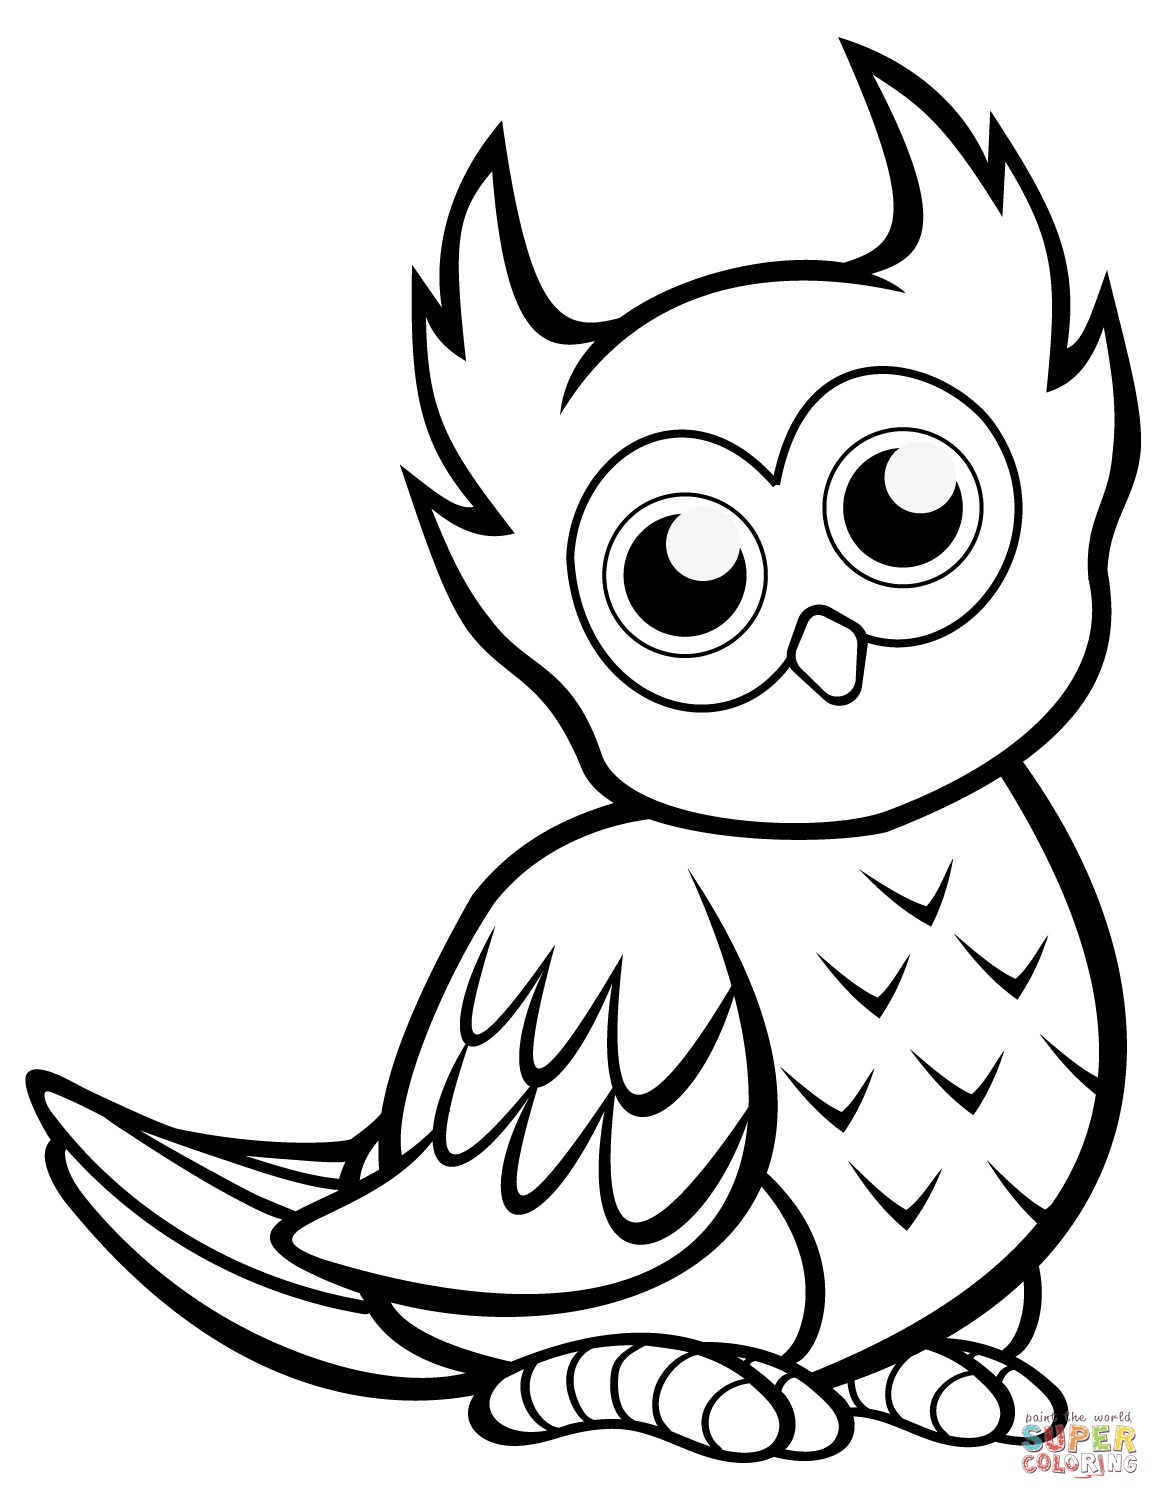 easy cute owl coloring pages easy cute owl drawing at getdrawings free download cute owl easy pages coloring